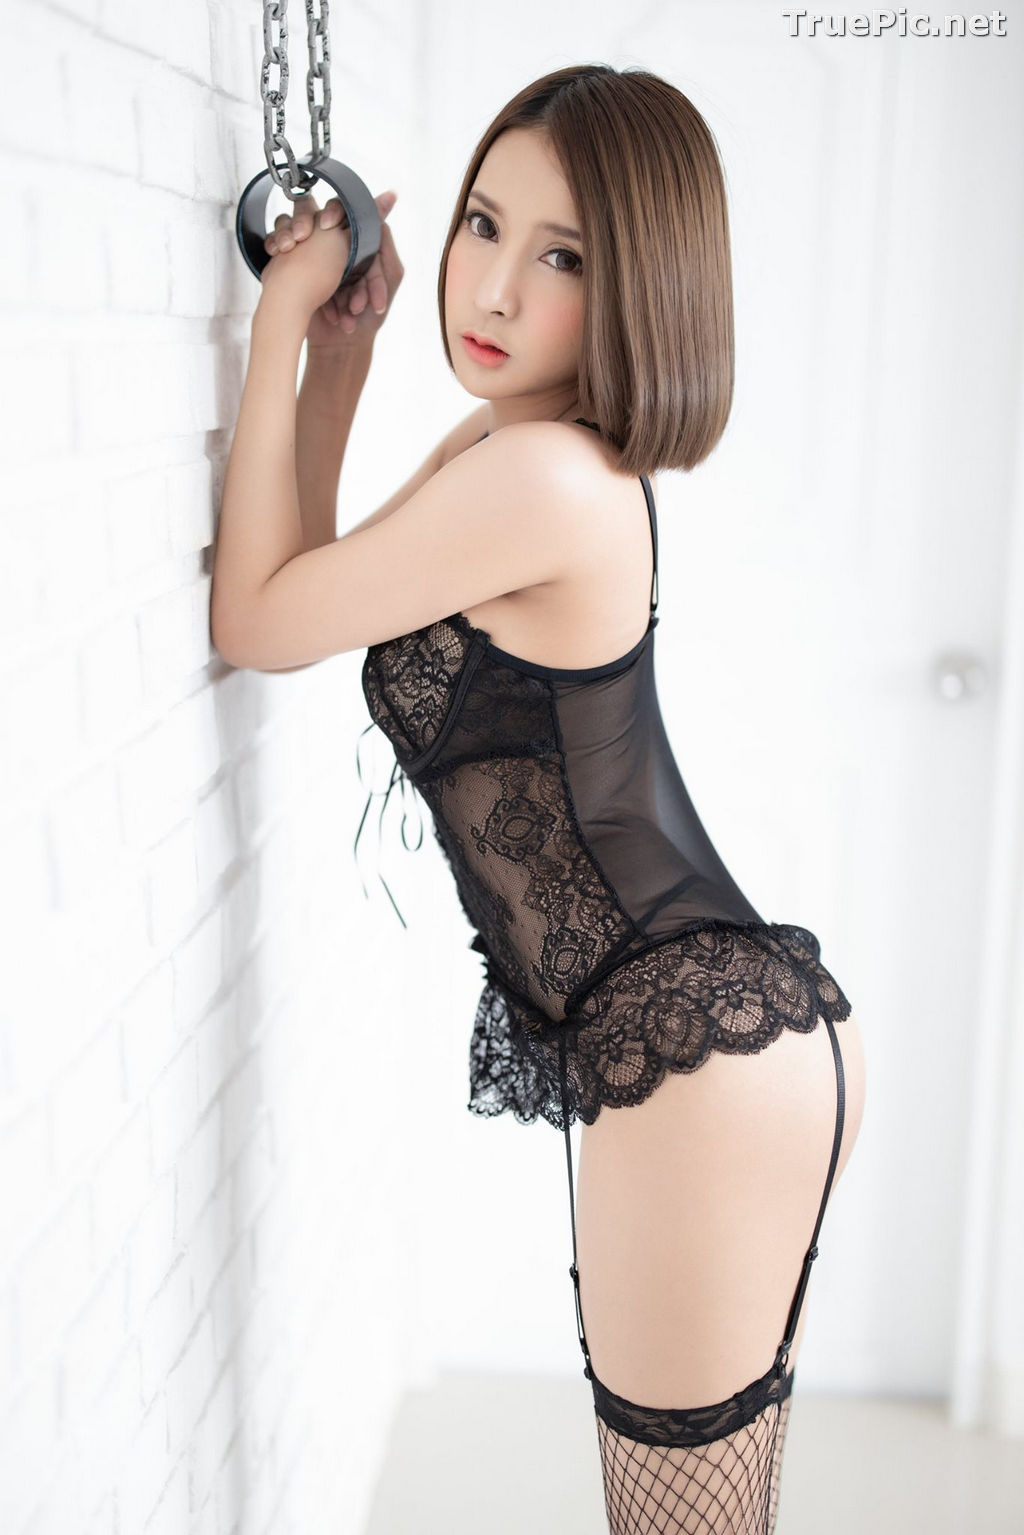 Image Thailand Sexy Model - ธนพร อ้นเซ่ง - How Do You Feel About Me - TruePic.net - Picture-1